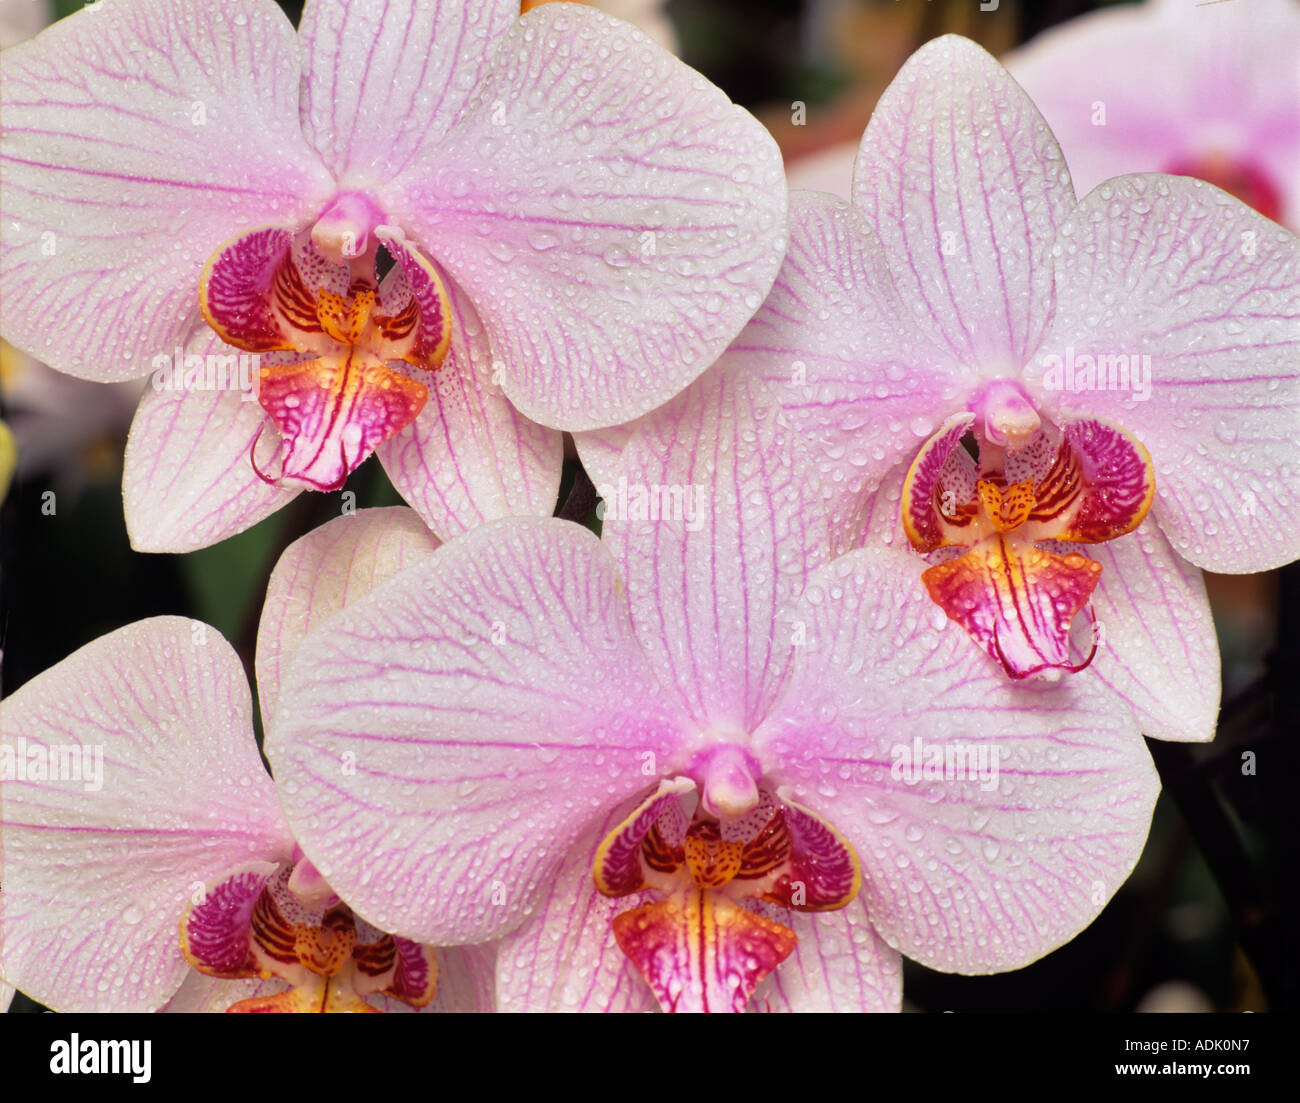 Orchid Dtps Rainbow Falls X Phal Melcocha With mist - Stock Image